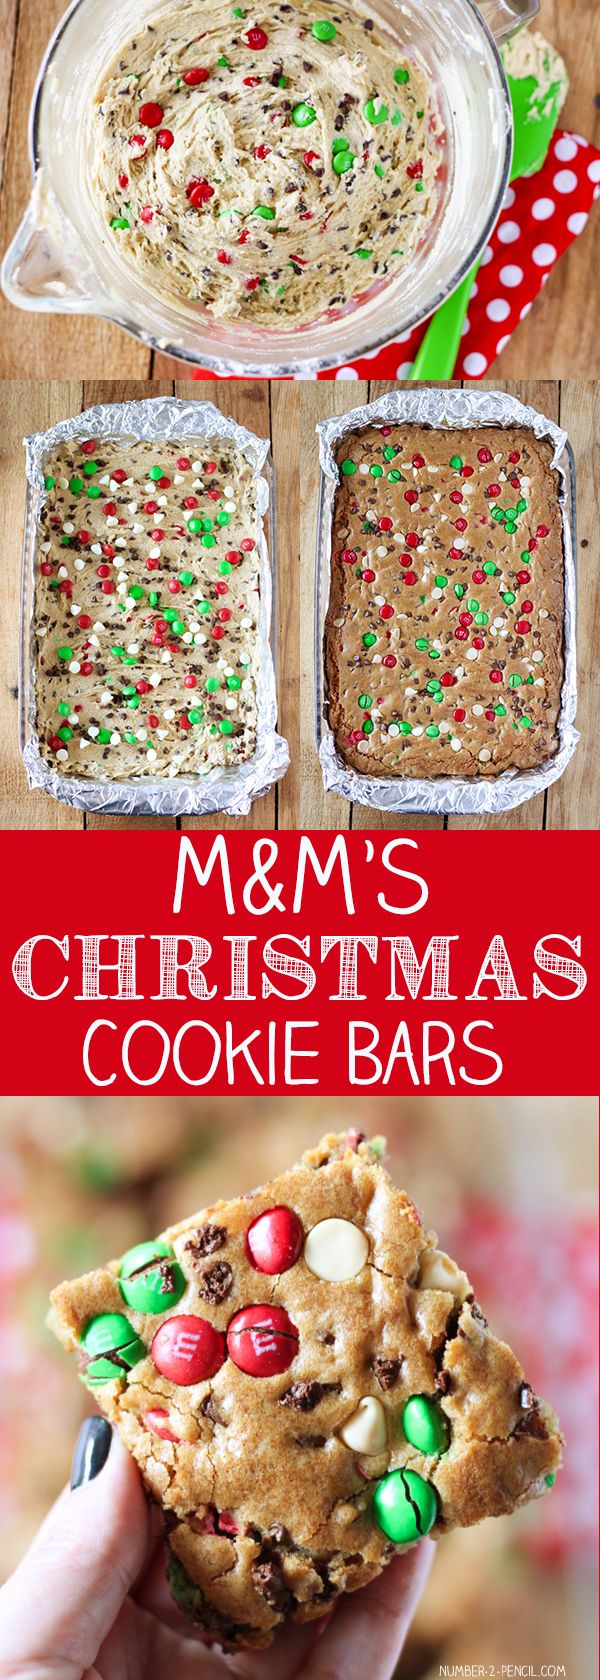 MandM'S Christmas Cookie Bars